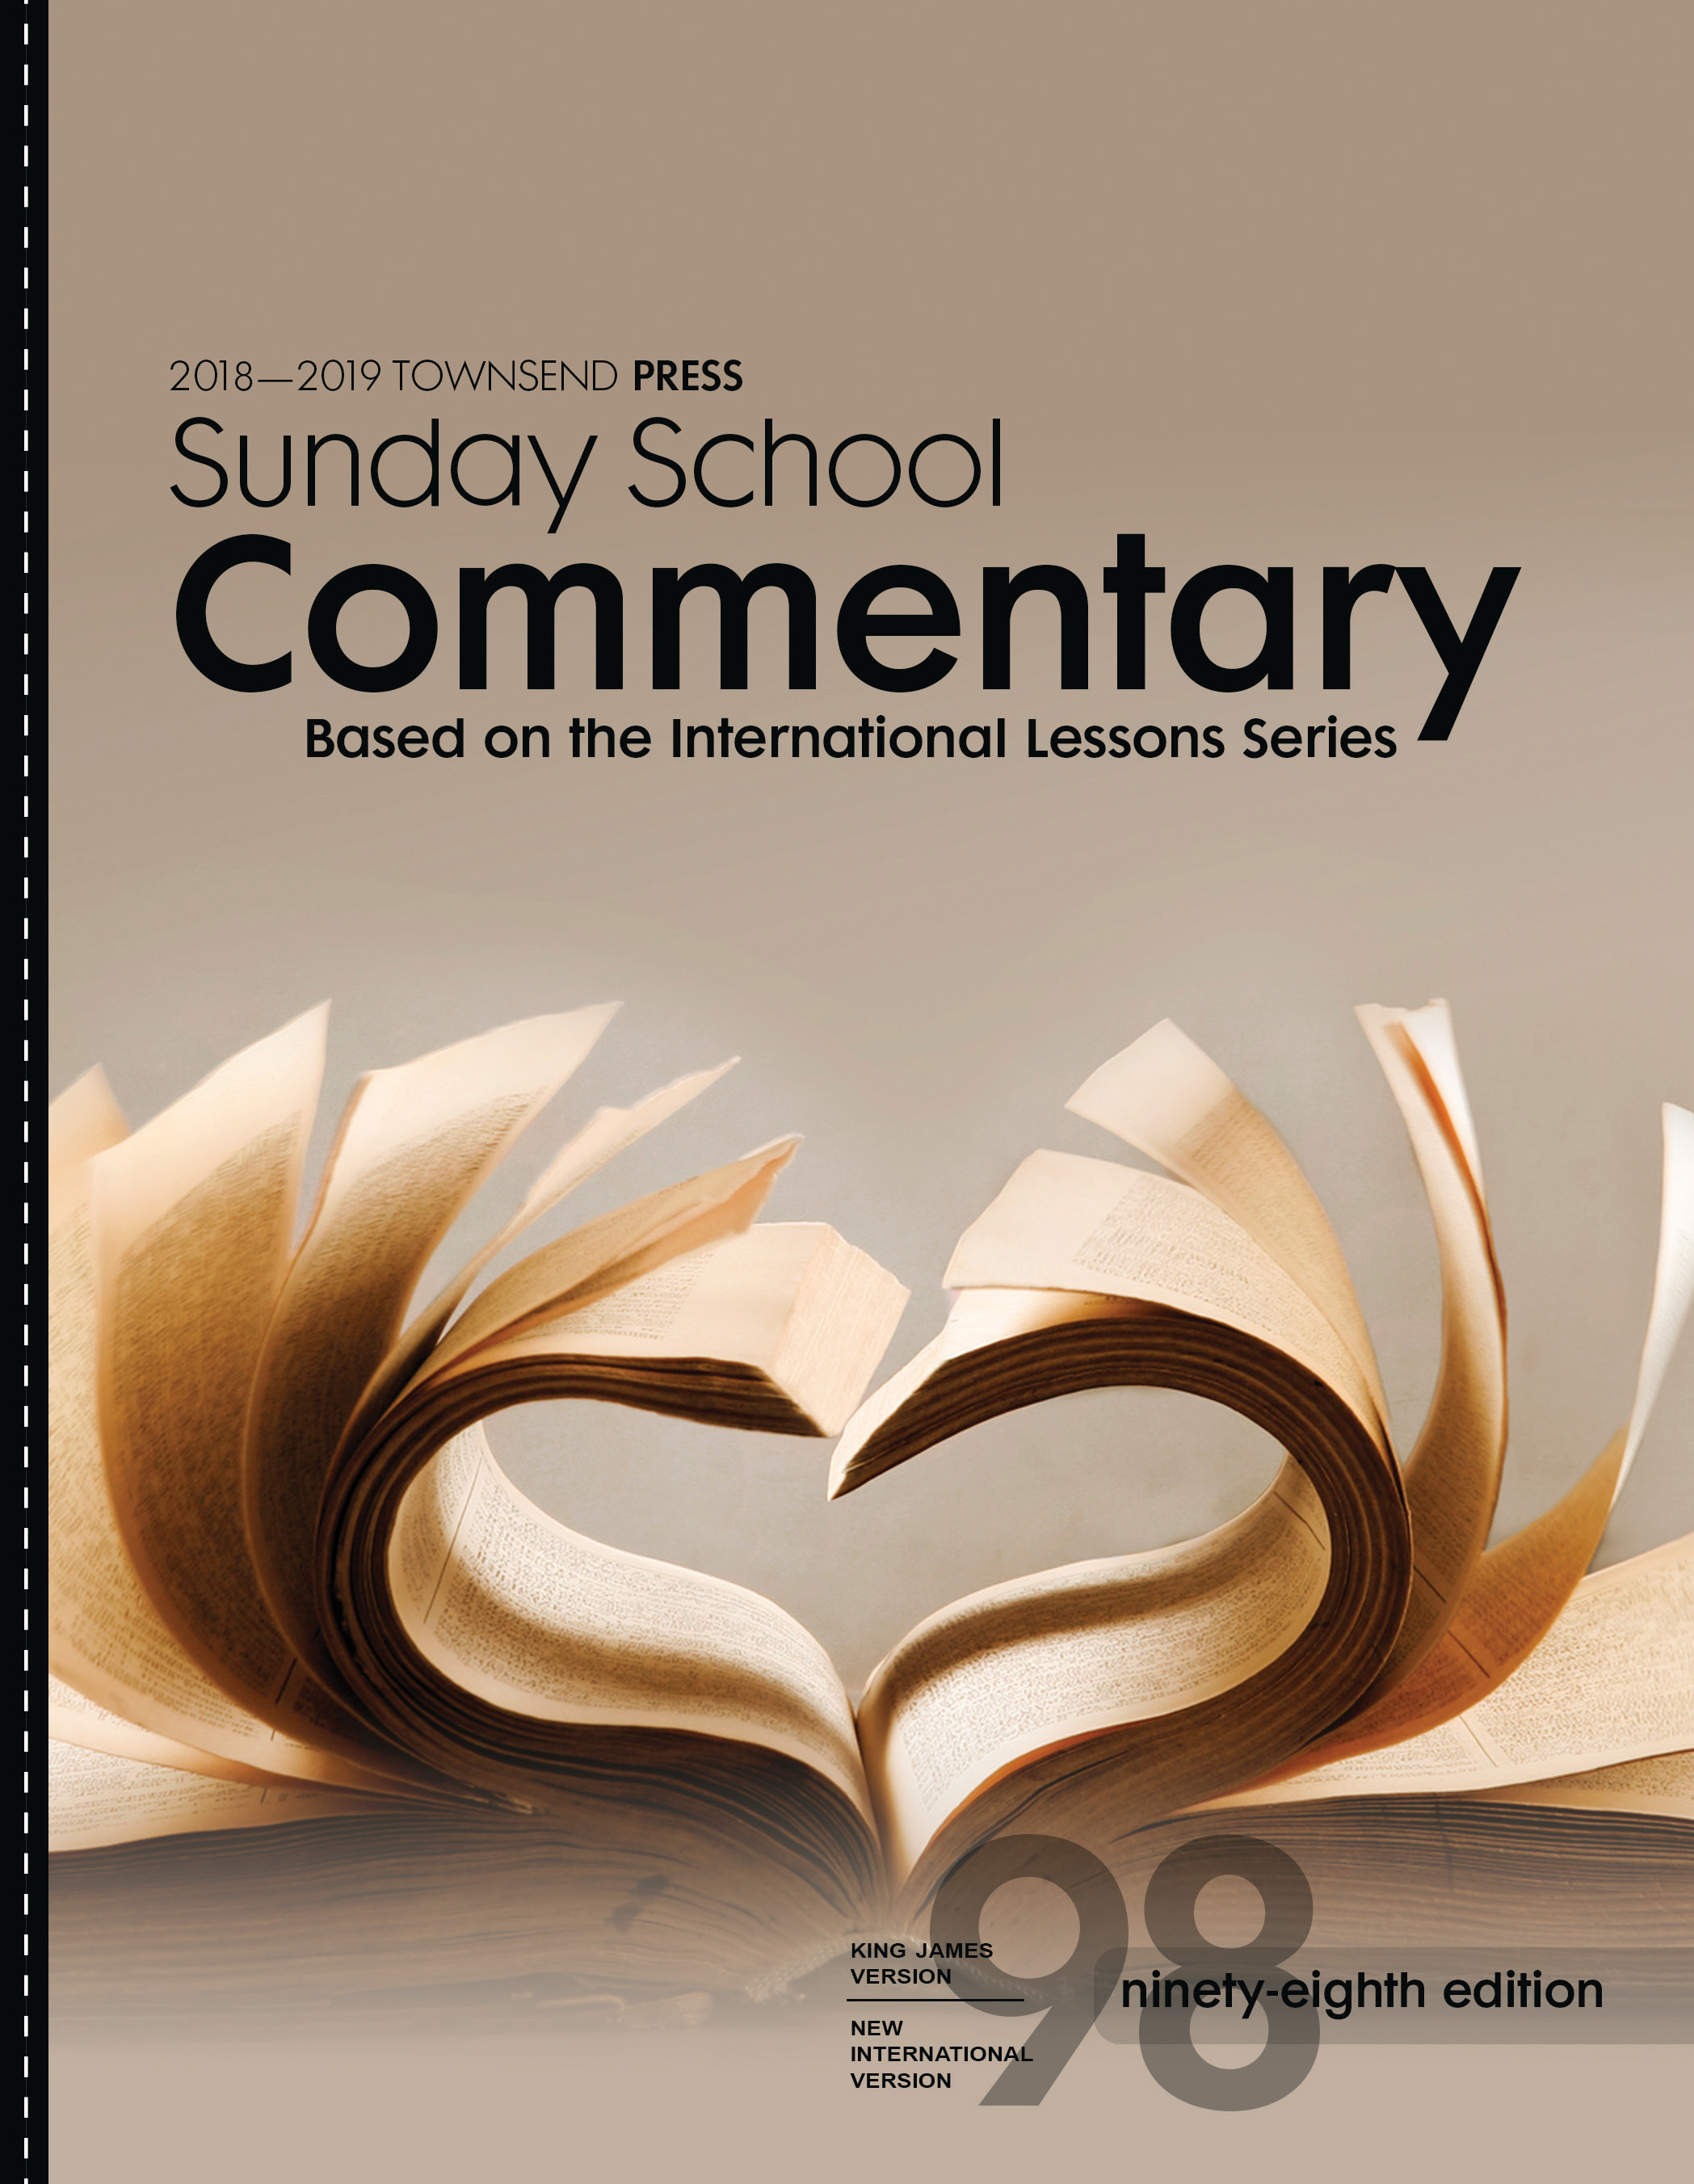 2018-2019 Townsend Press Sunday School Commentary 98th Edition Copy